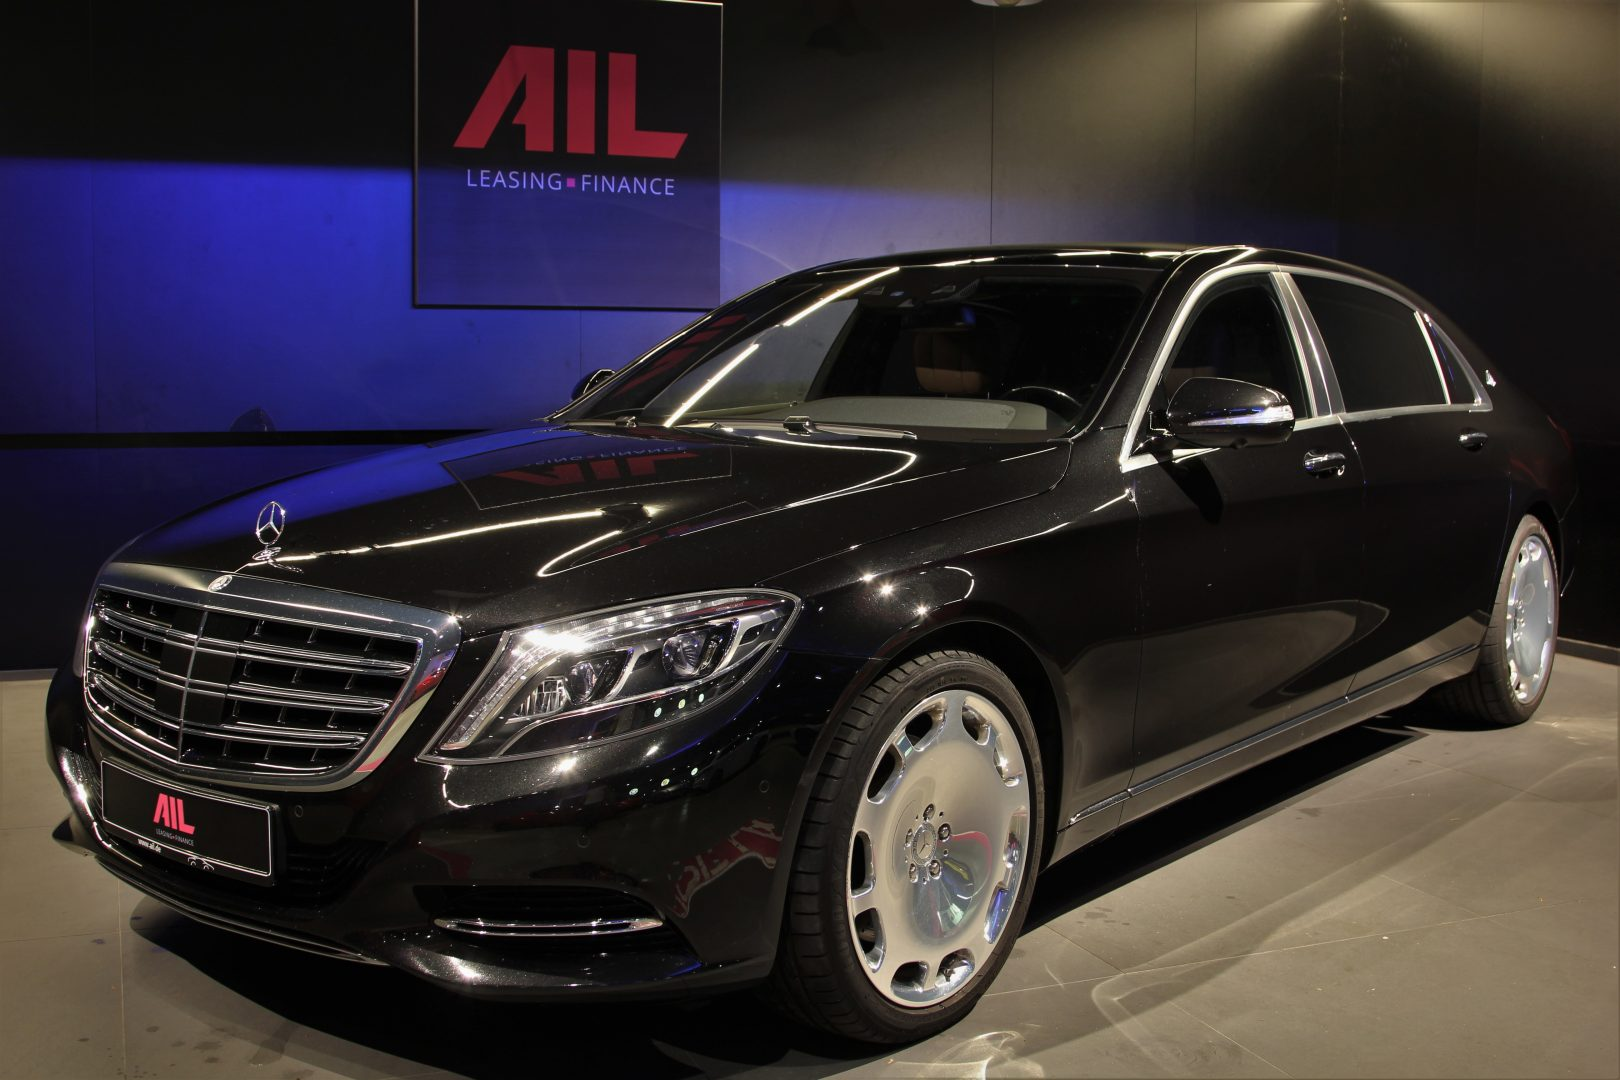 AIL Mercedes-Benz S 500 Maybach First-Class Fond RSE 15